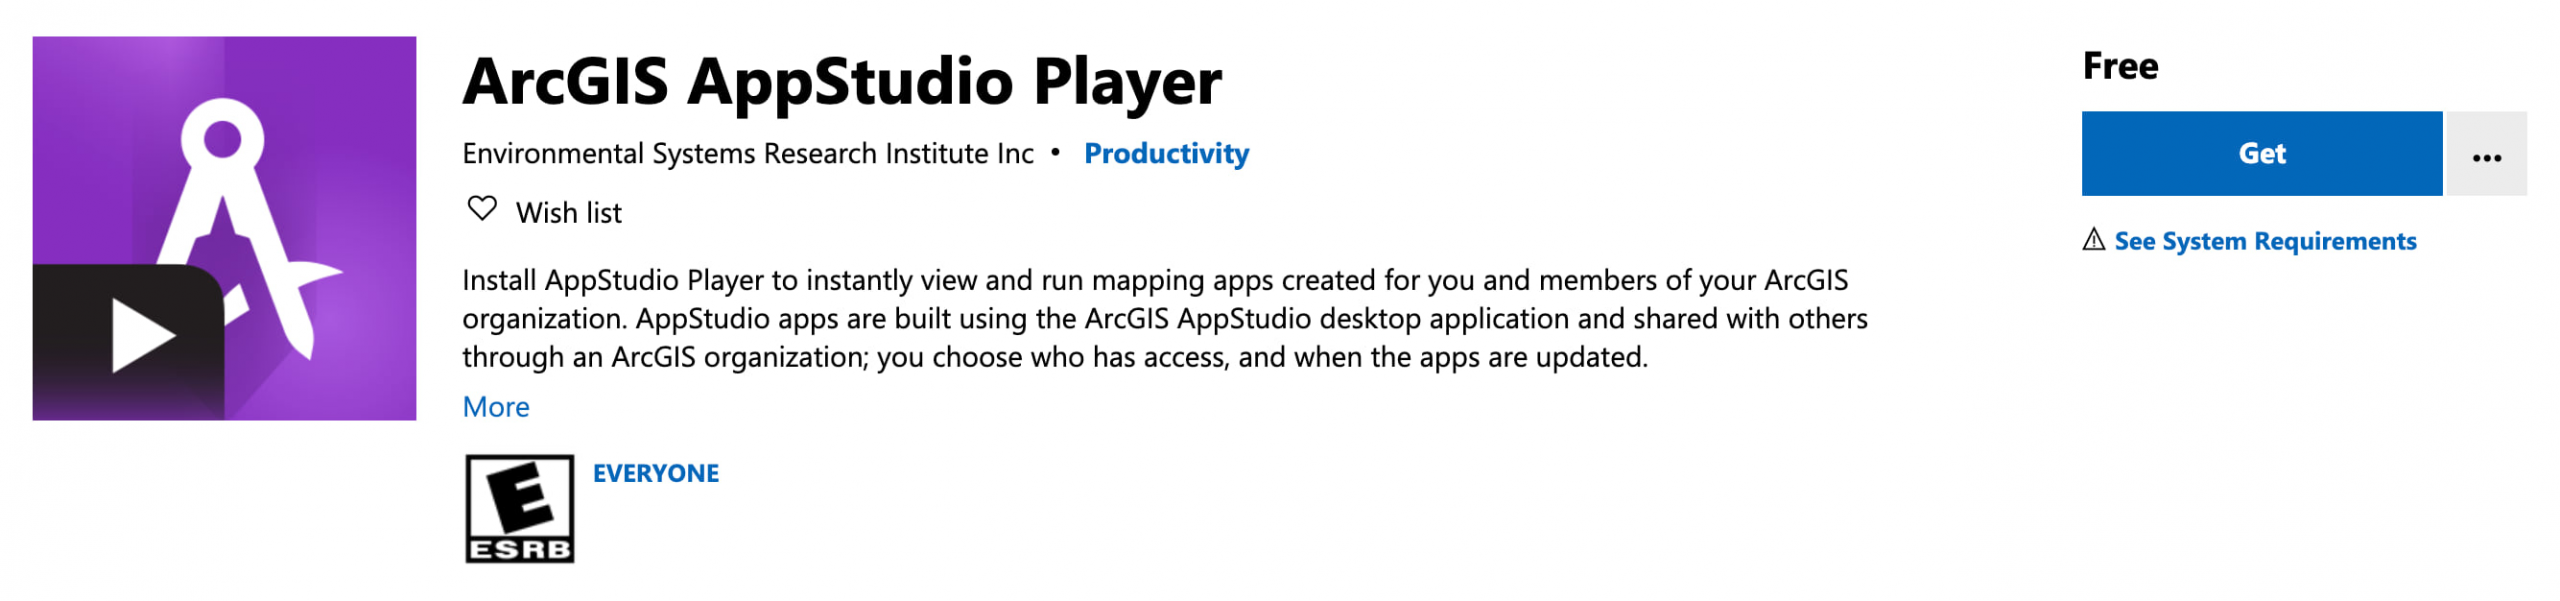 AppStudio Player at Microsoft store